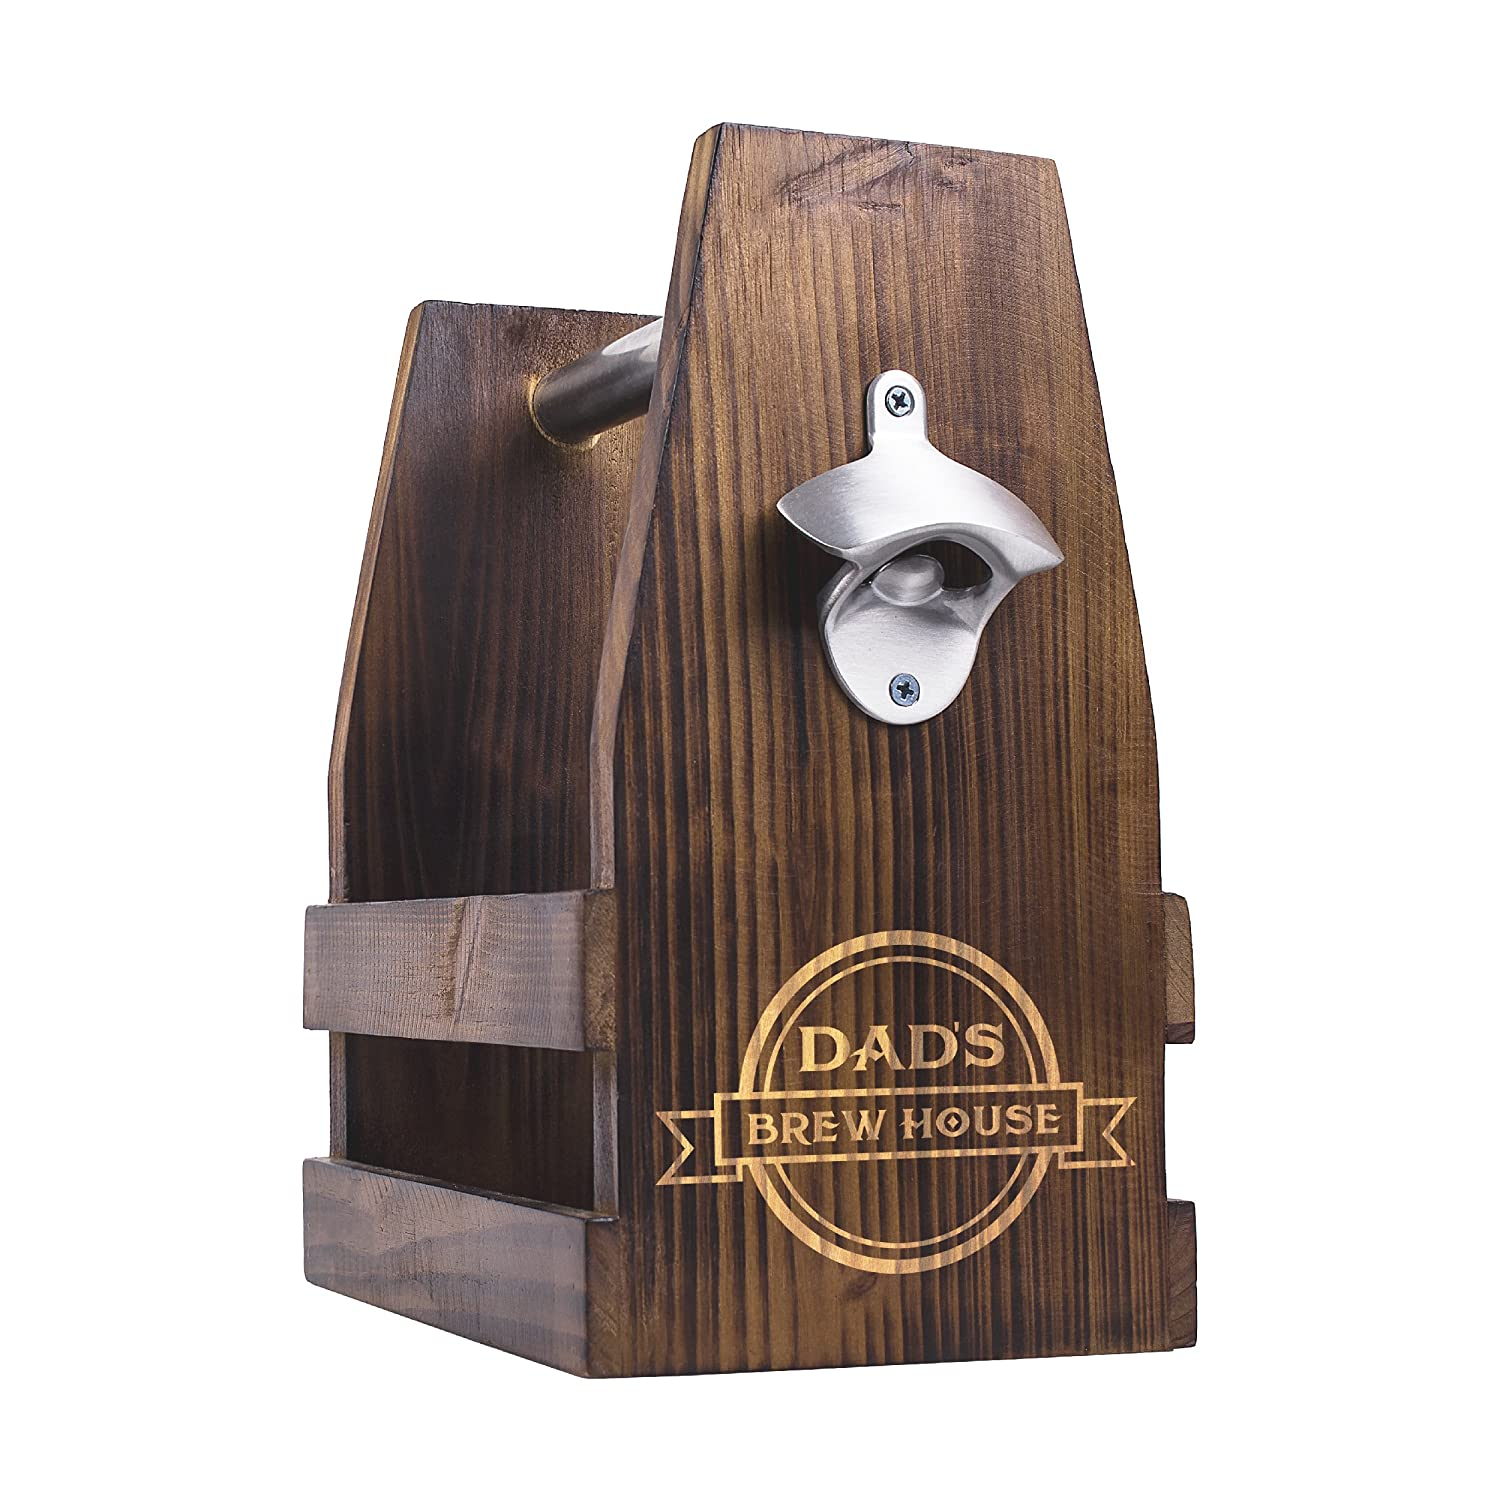 Cathy's Concepts Dad's Brew House Rustic Craft Beer Carrier with Bottle Opener, Brown Cathy's Concepts FD16-2297